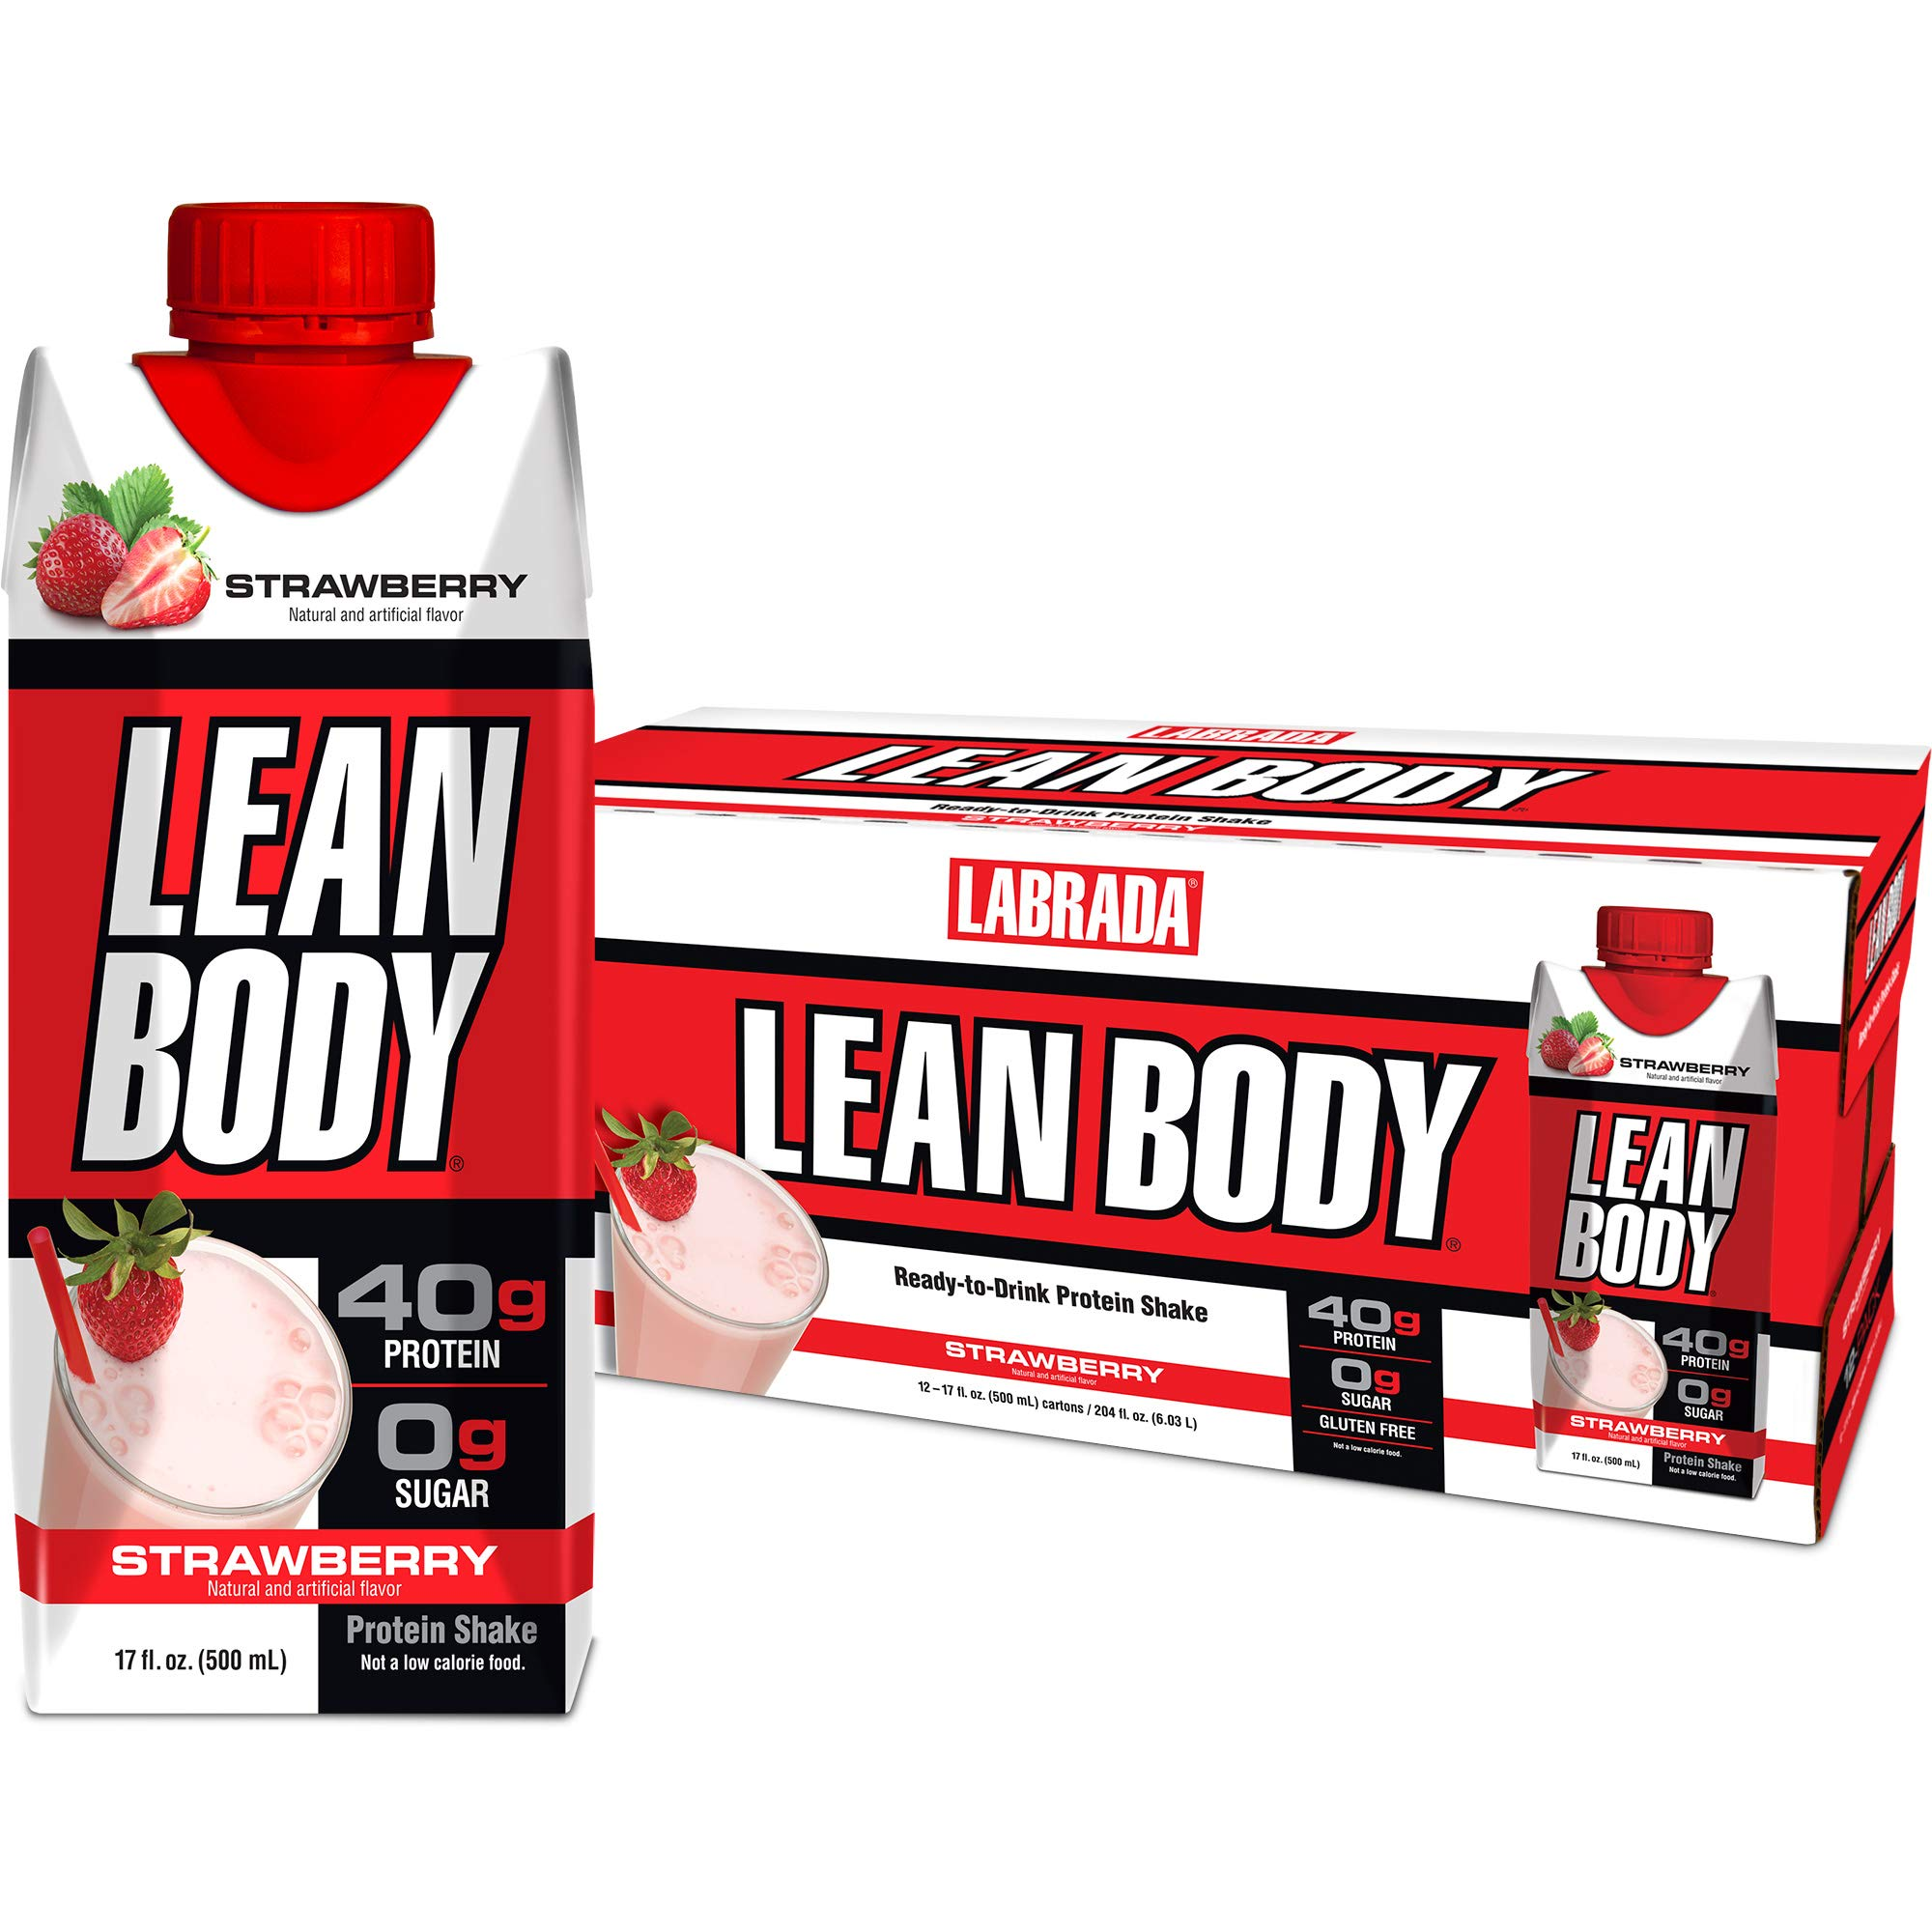 LABRADA - Lean Body Ready To Drink Whey Protein Shake, Convenient On-The-Go Meal Replacement Shake for Men & Women, 40 grams of Protein - Zero Sugar, Lactose & Gluten Free, Strawberry (Pack of 12) by Labrada